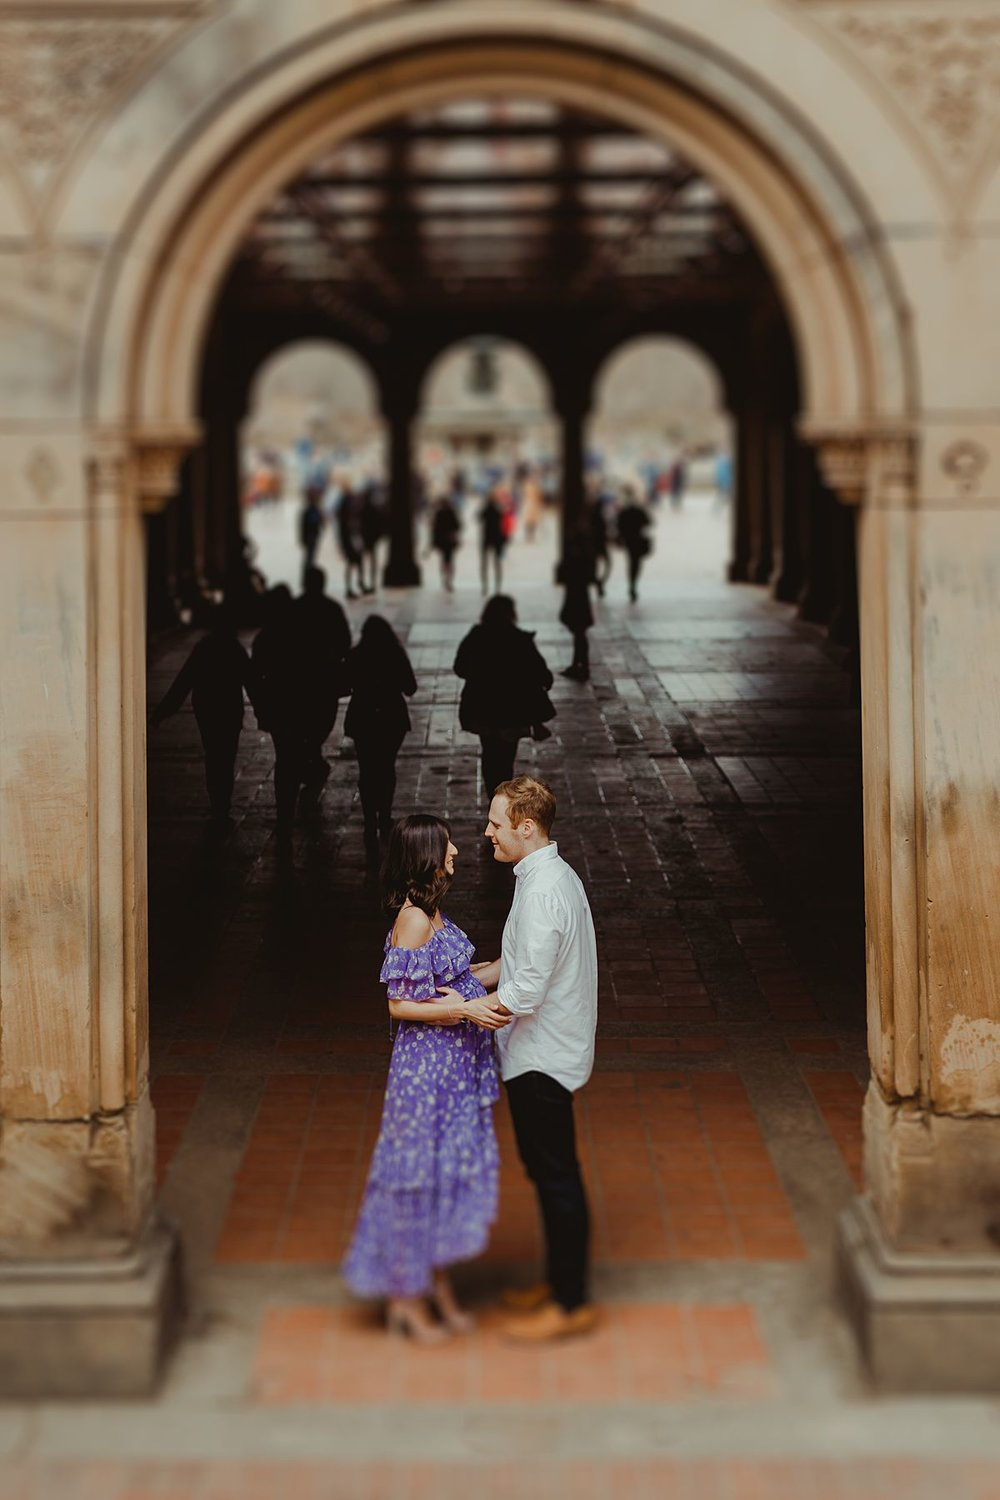 expecting couple stands at entrance to bethesda terrace in central park new york city. image by nyc family and newborn photographer krystil mcdowall